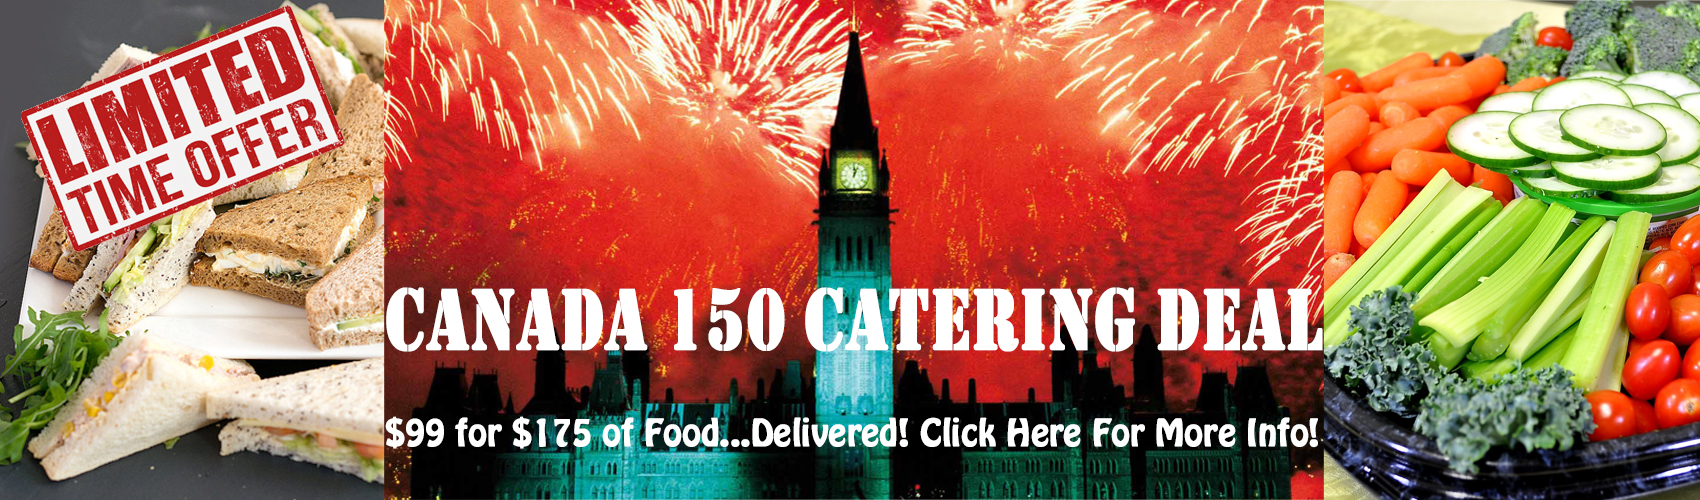 canada150catering_header_edited-2